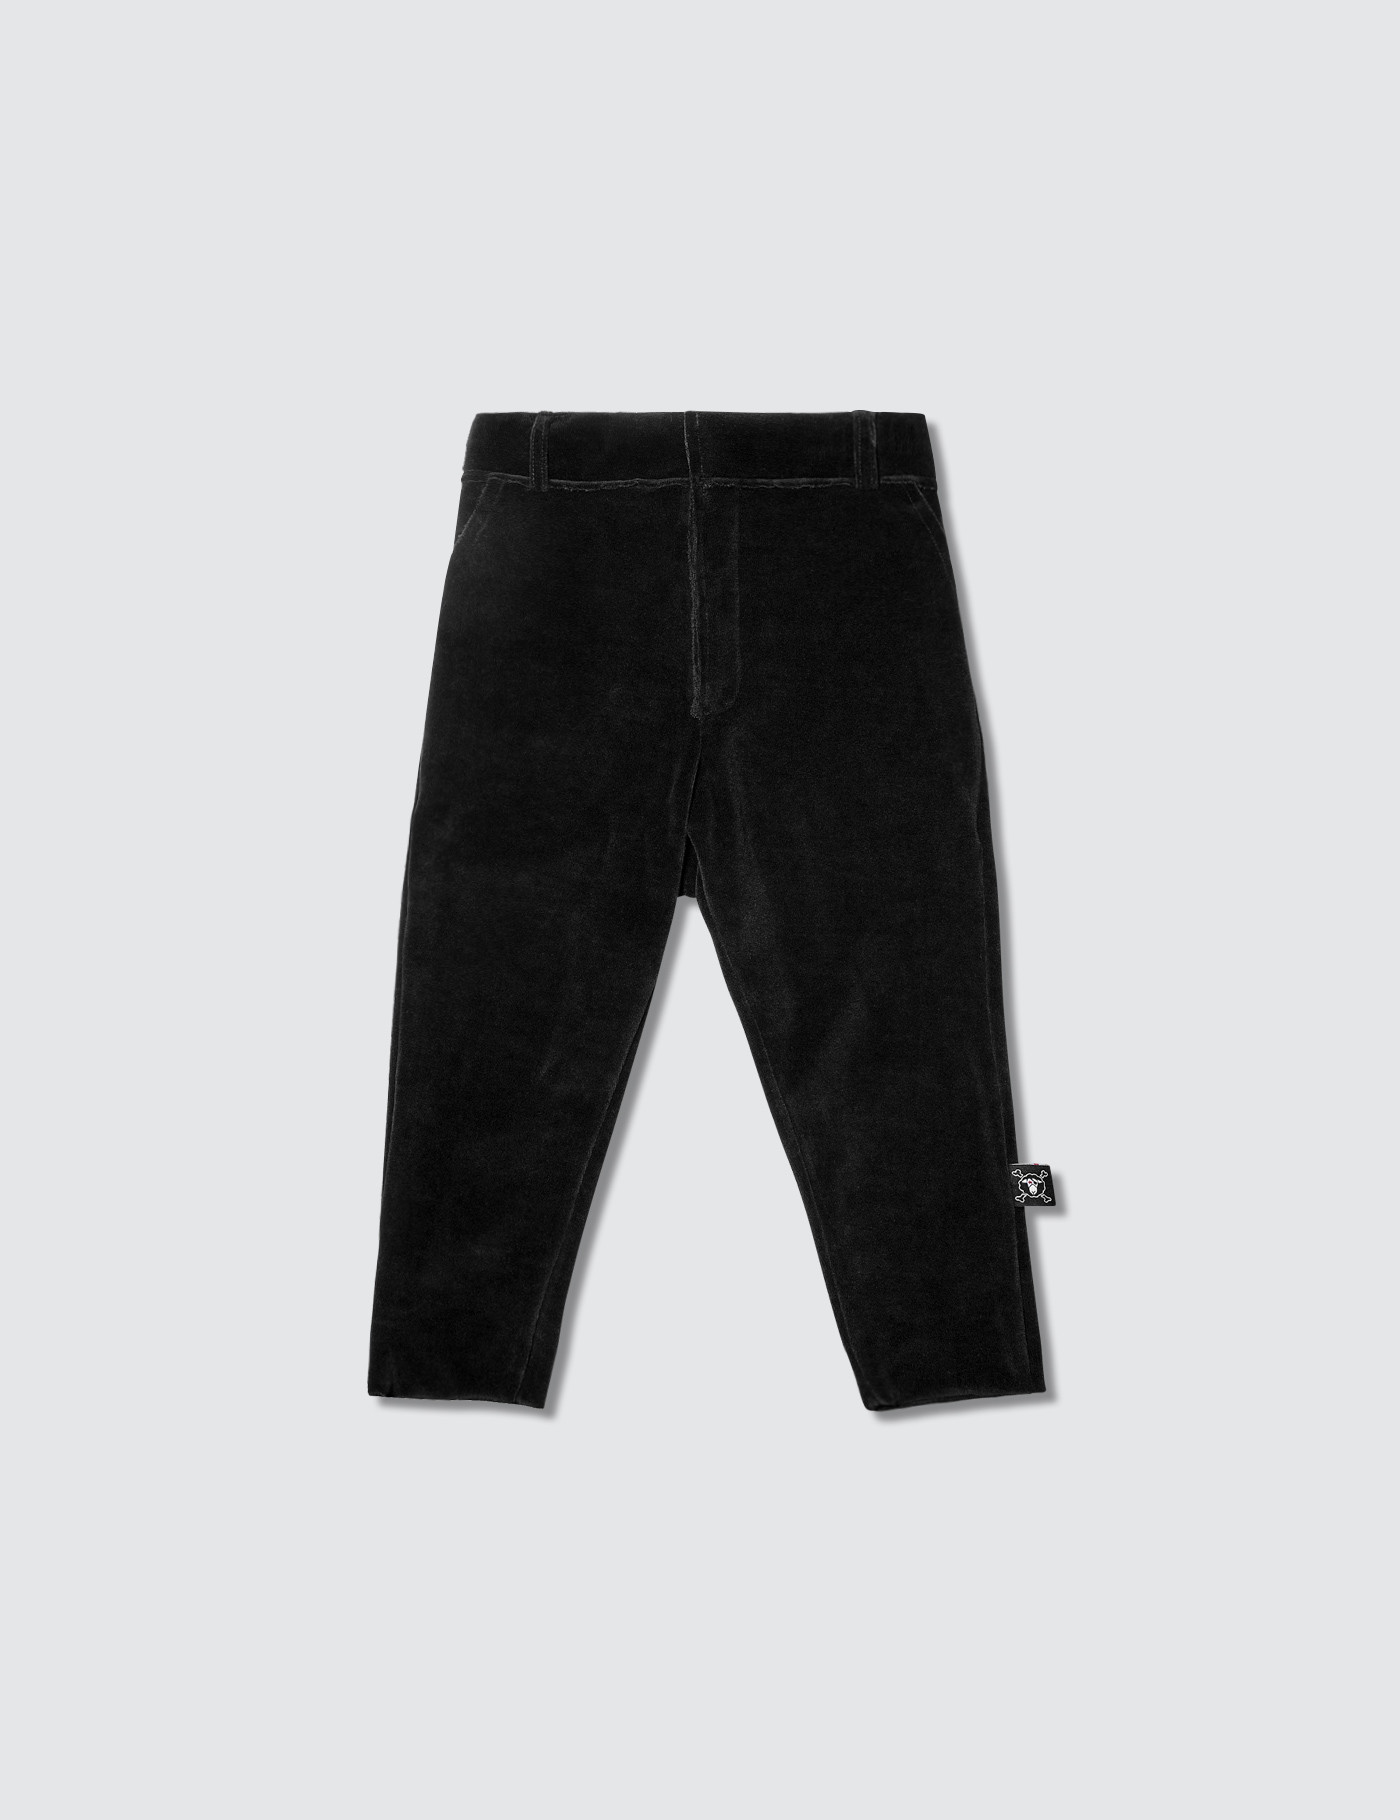 NUNUNU Velvet Tailored Pants